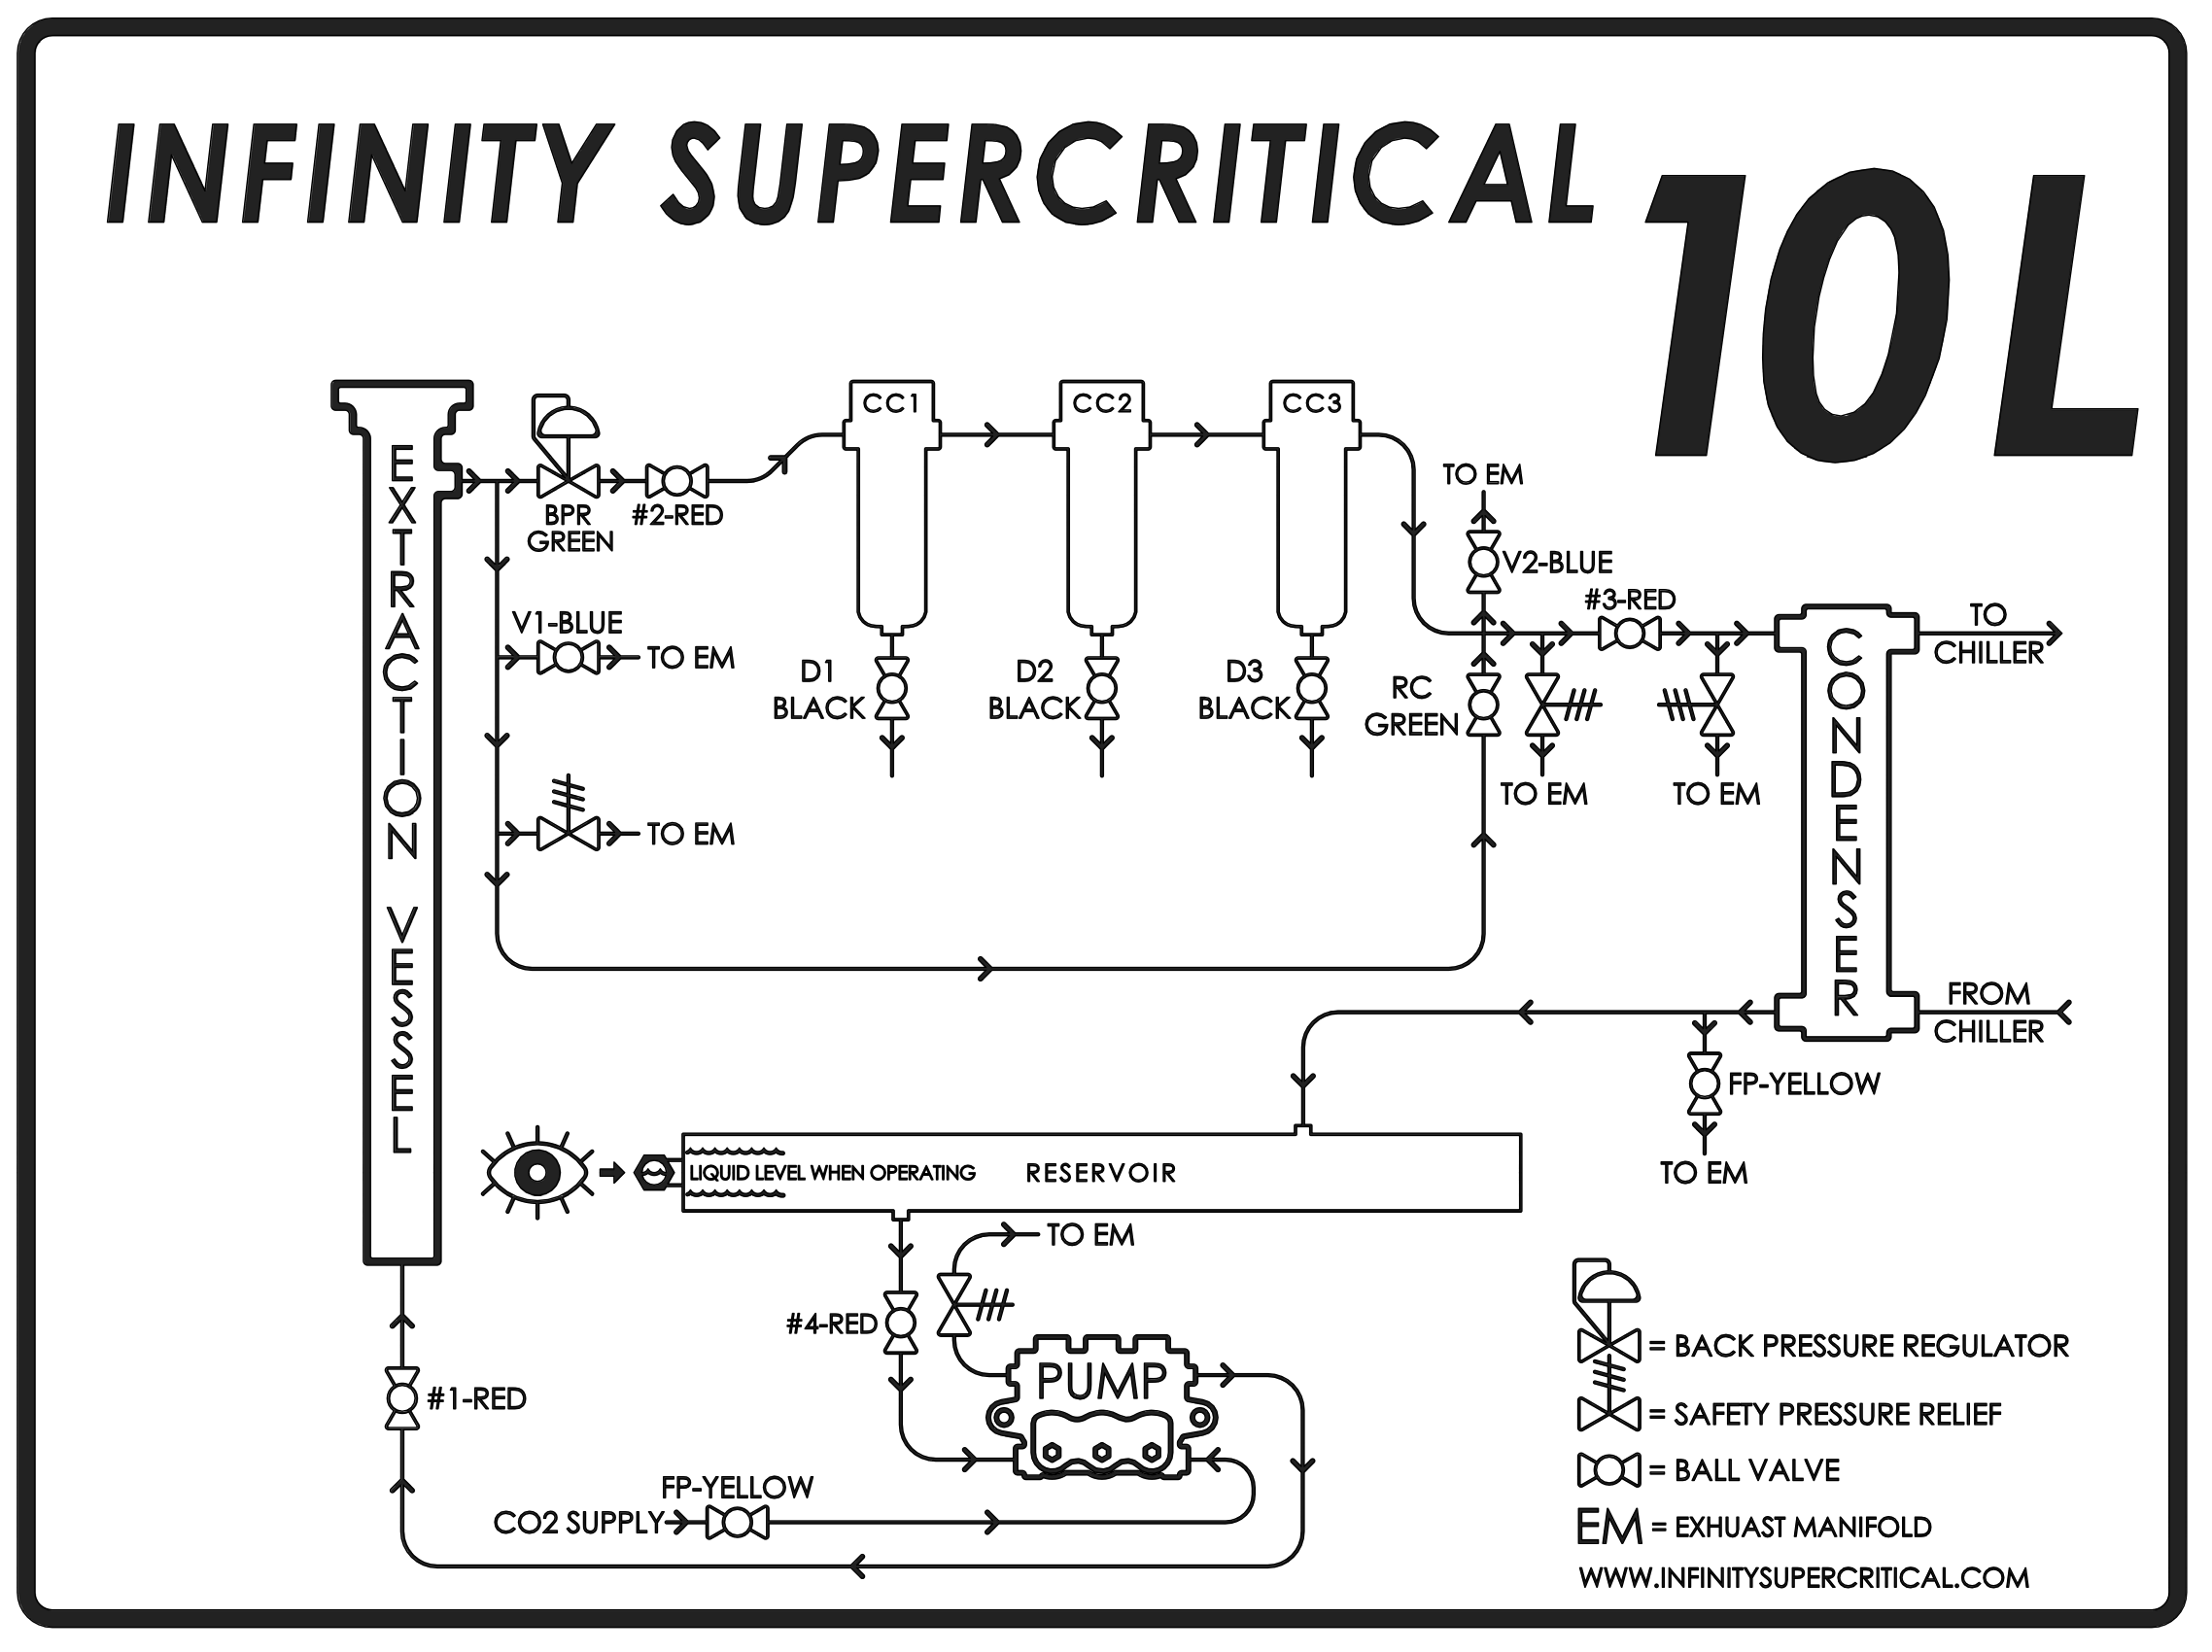 system flow diagram for supercritical co2 operations